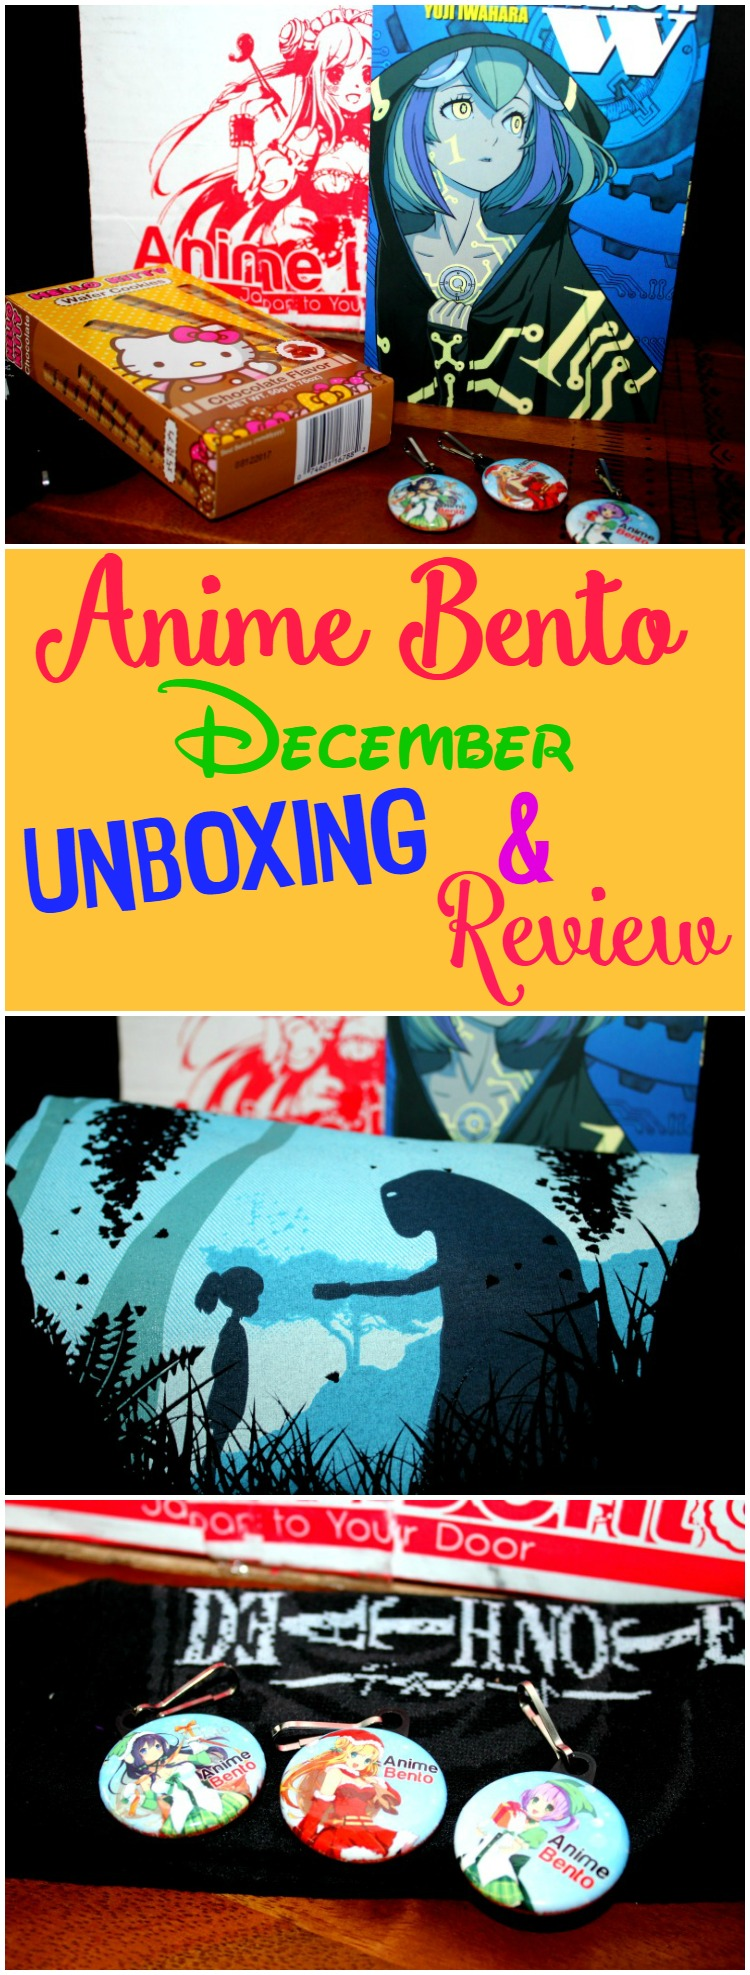 We received our first Anime Bento Subscription Box and can't wait to get our next one.